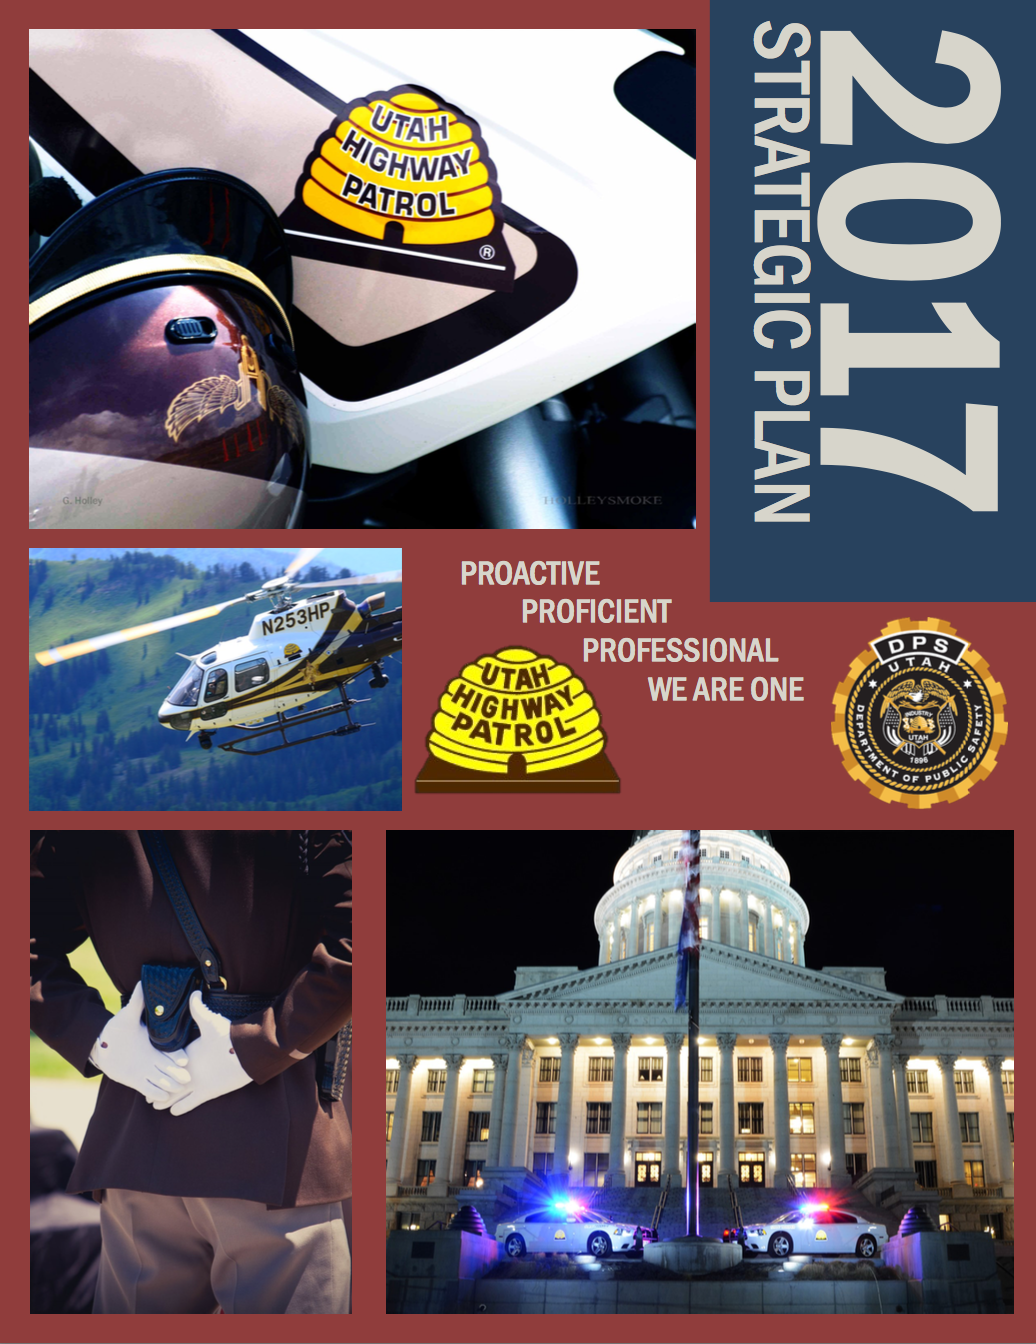 Screen cap of cover of 2017 UHP Strategic Plan